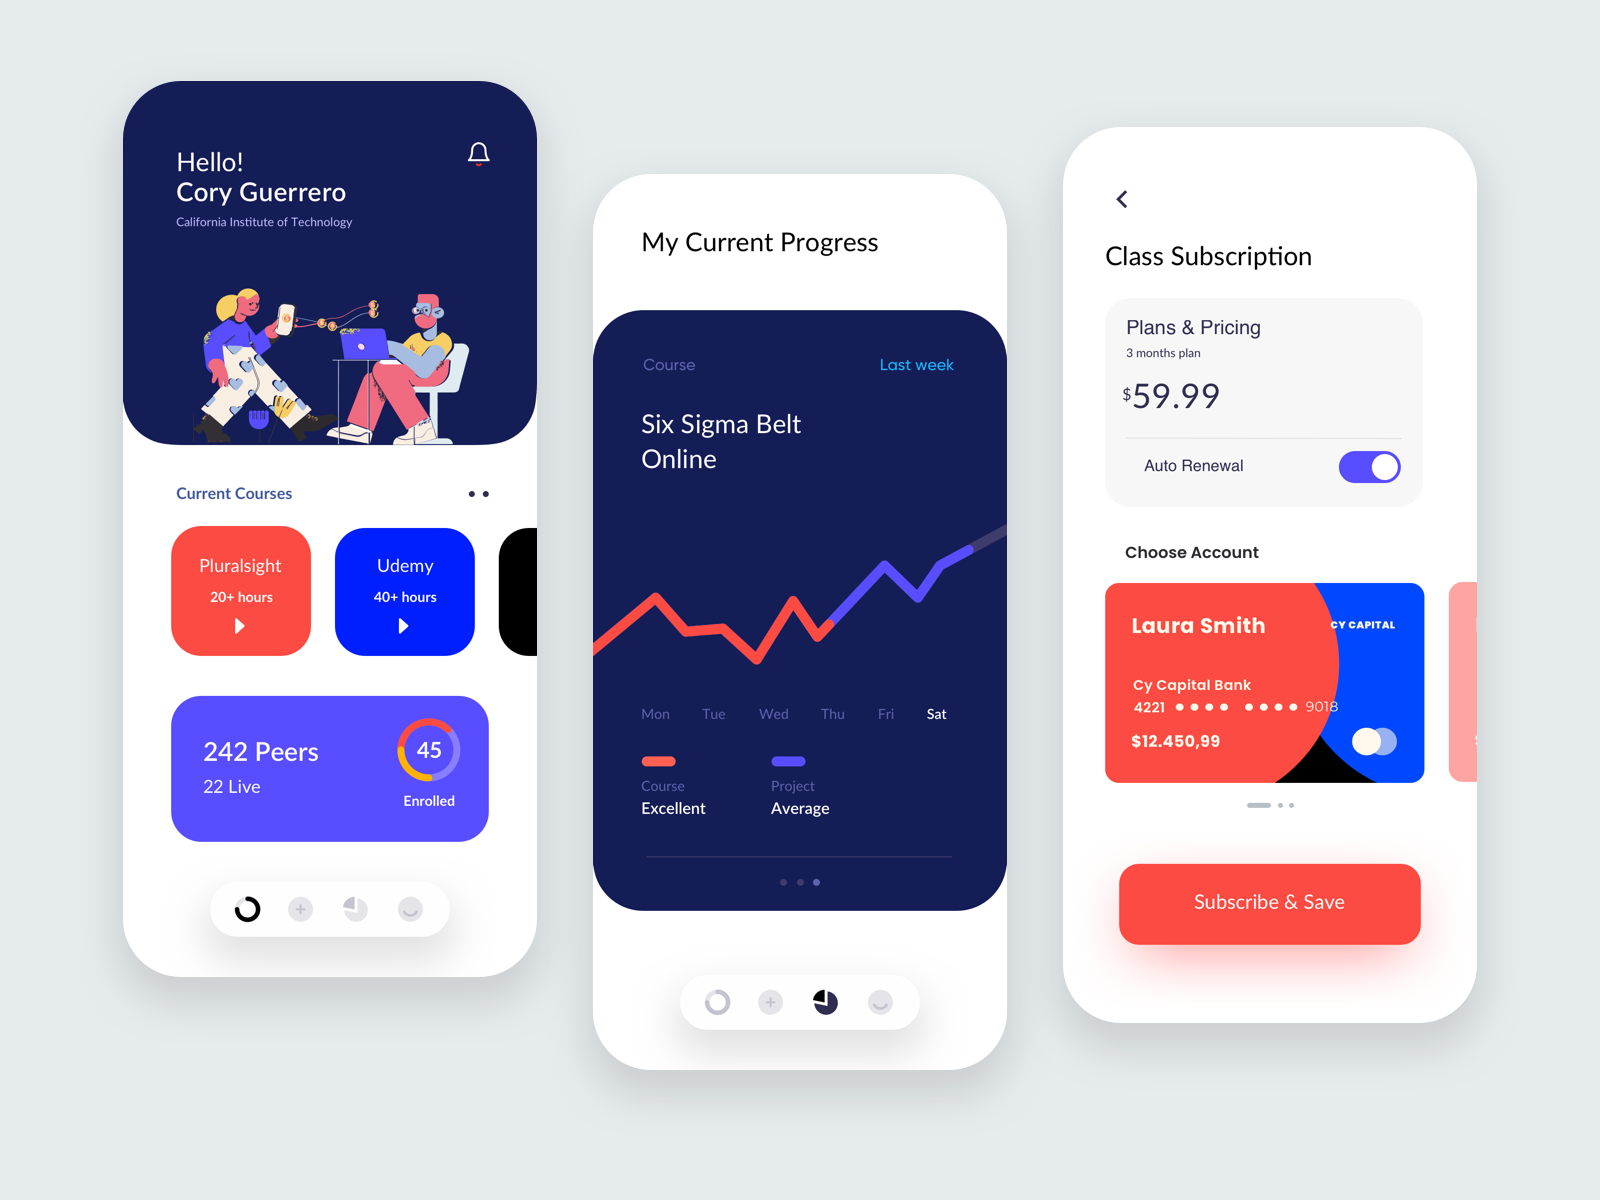 Course Hero By Vishalverma For Hie Hq On Dribbble